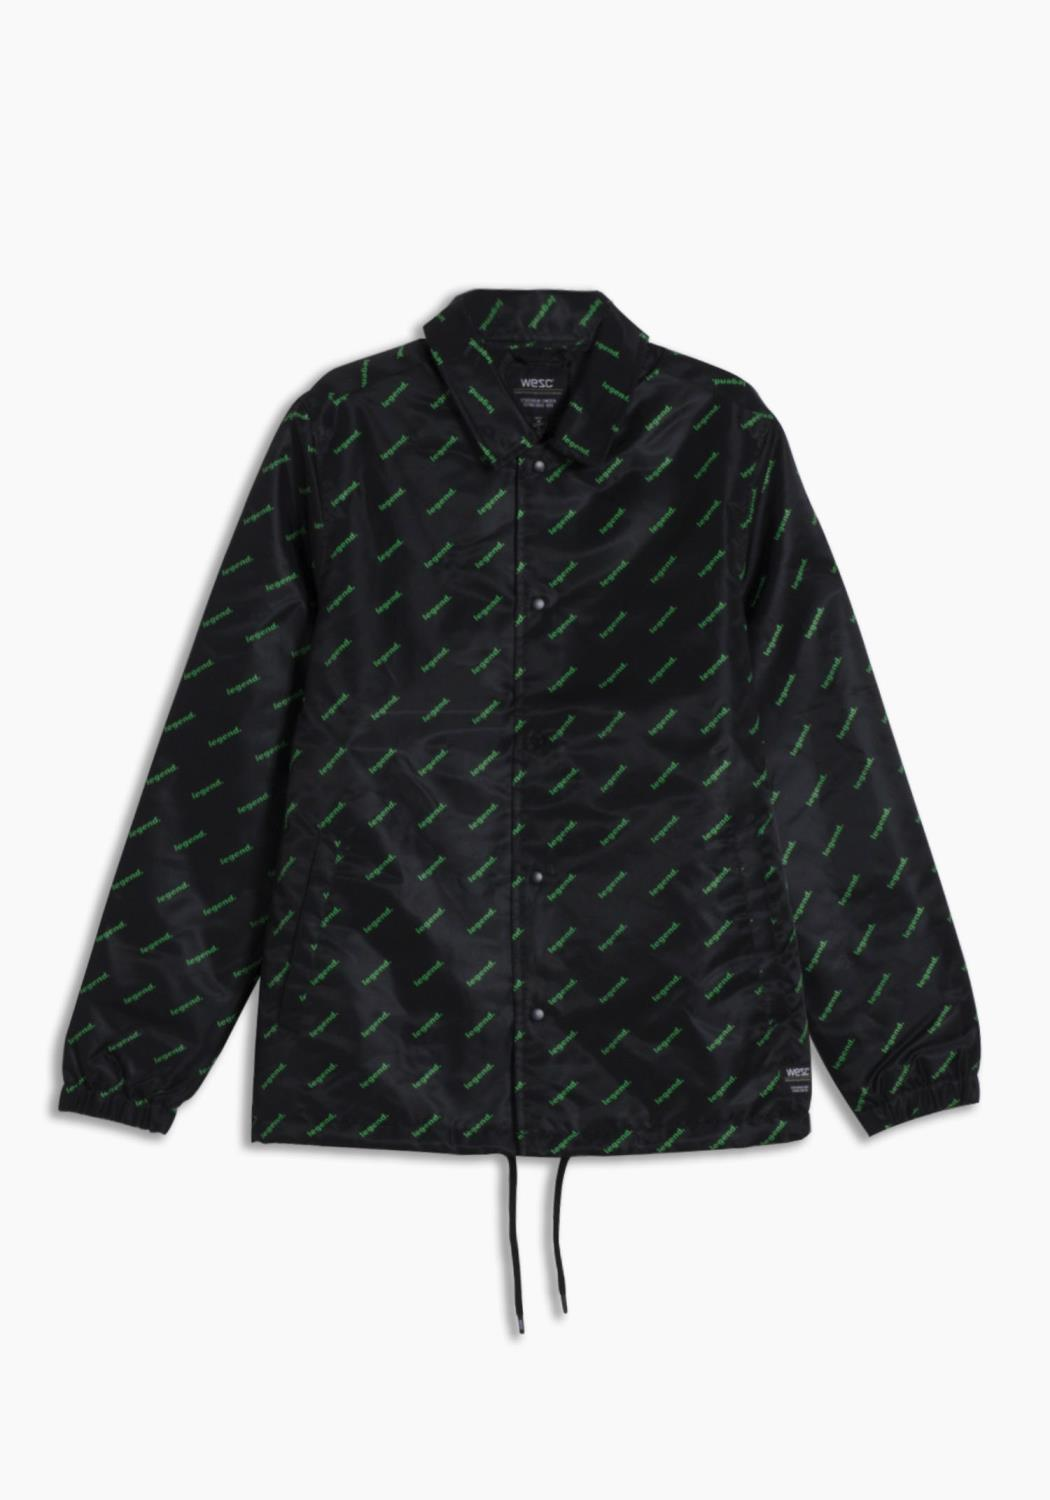 WESC LEGEND COACH JACKET